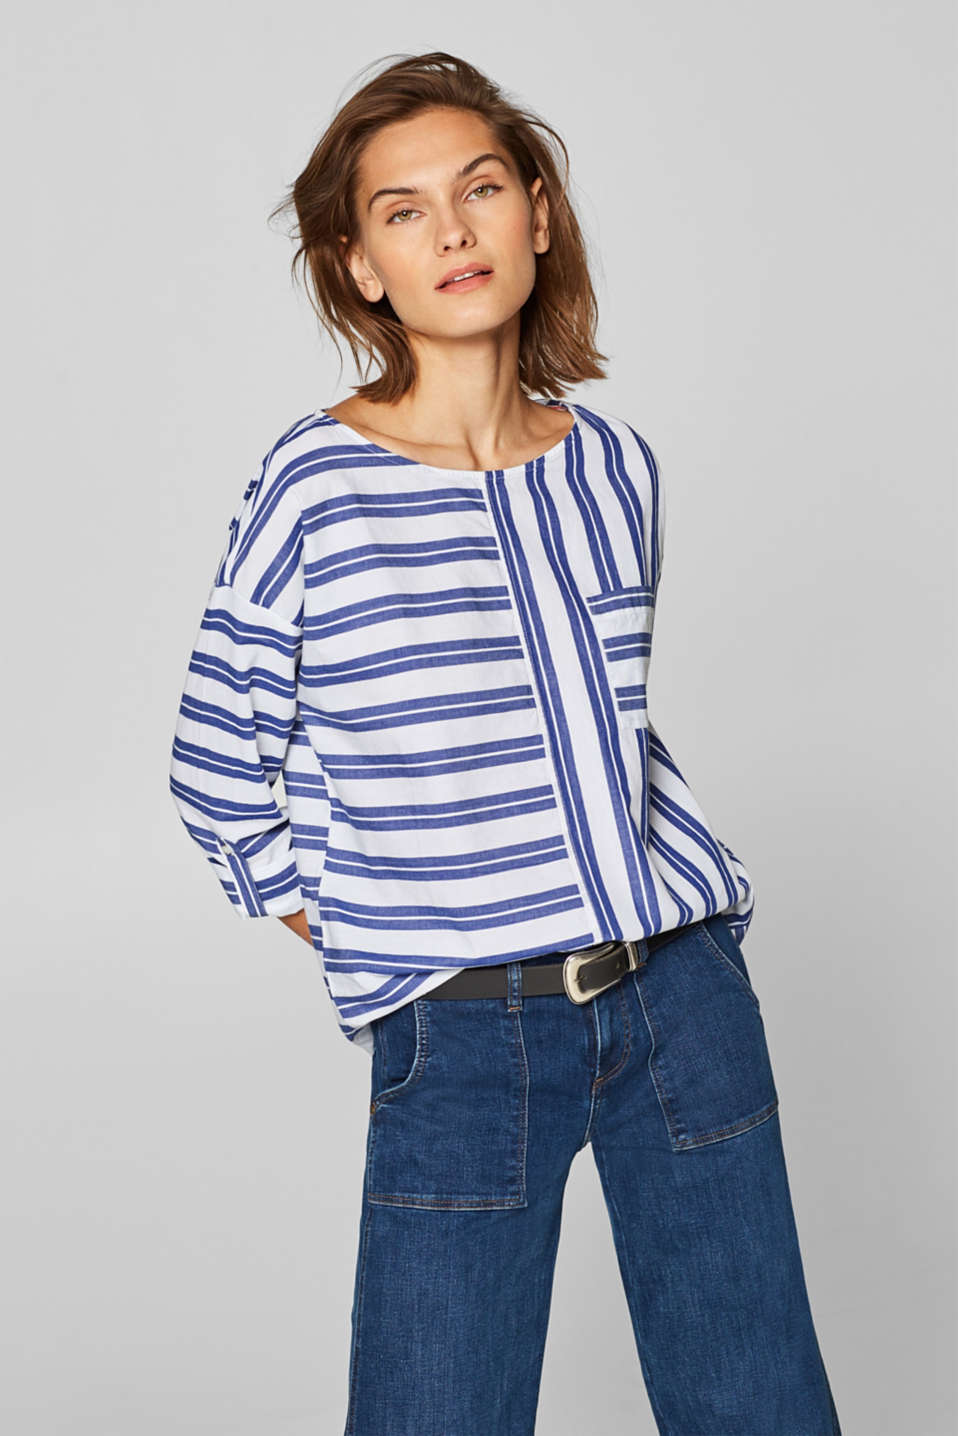 Esprit - 100% cotton blouse with striped turn-up sleeves